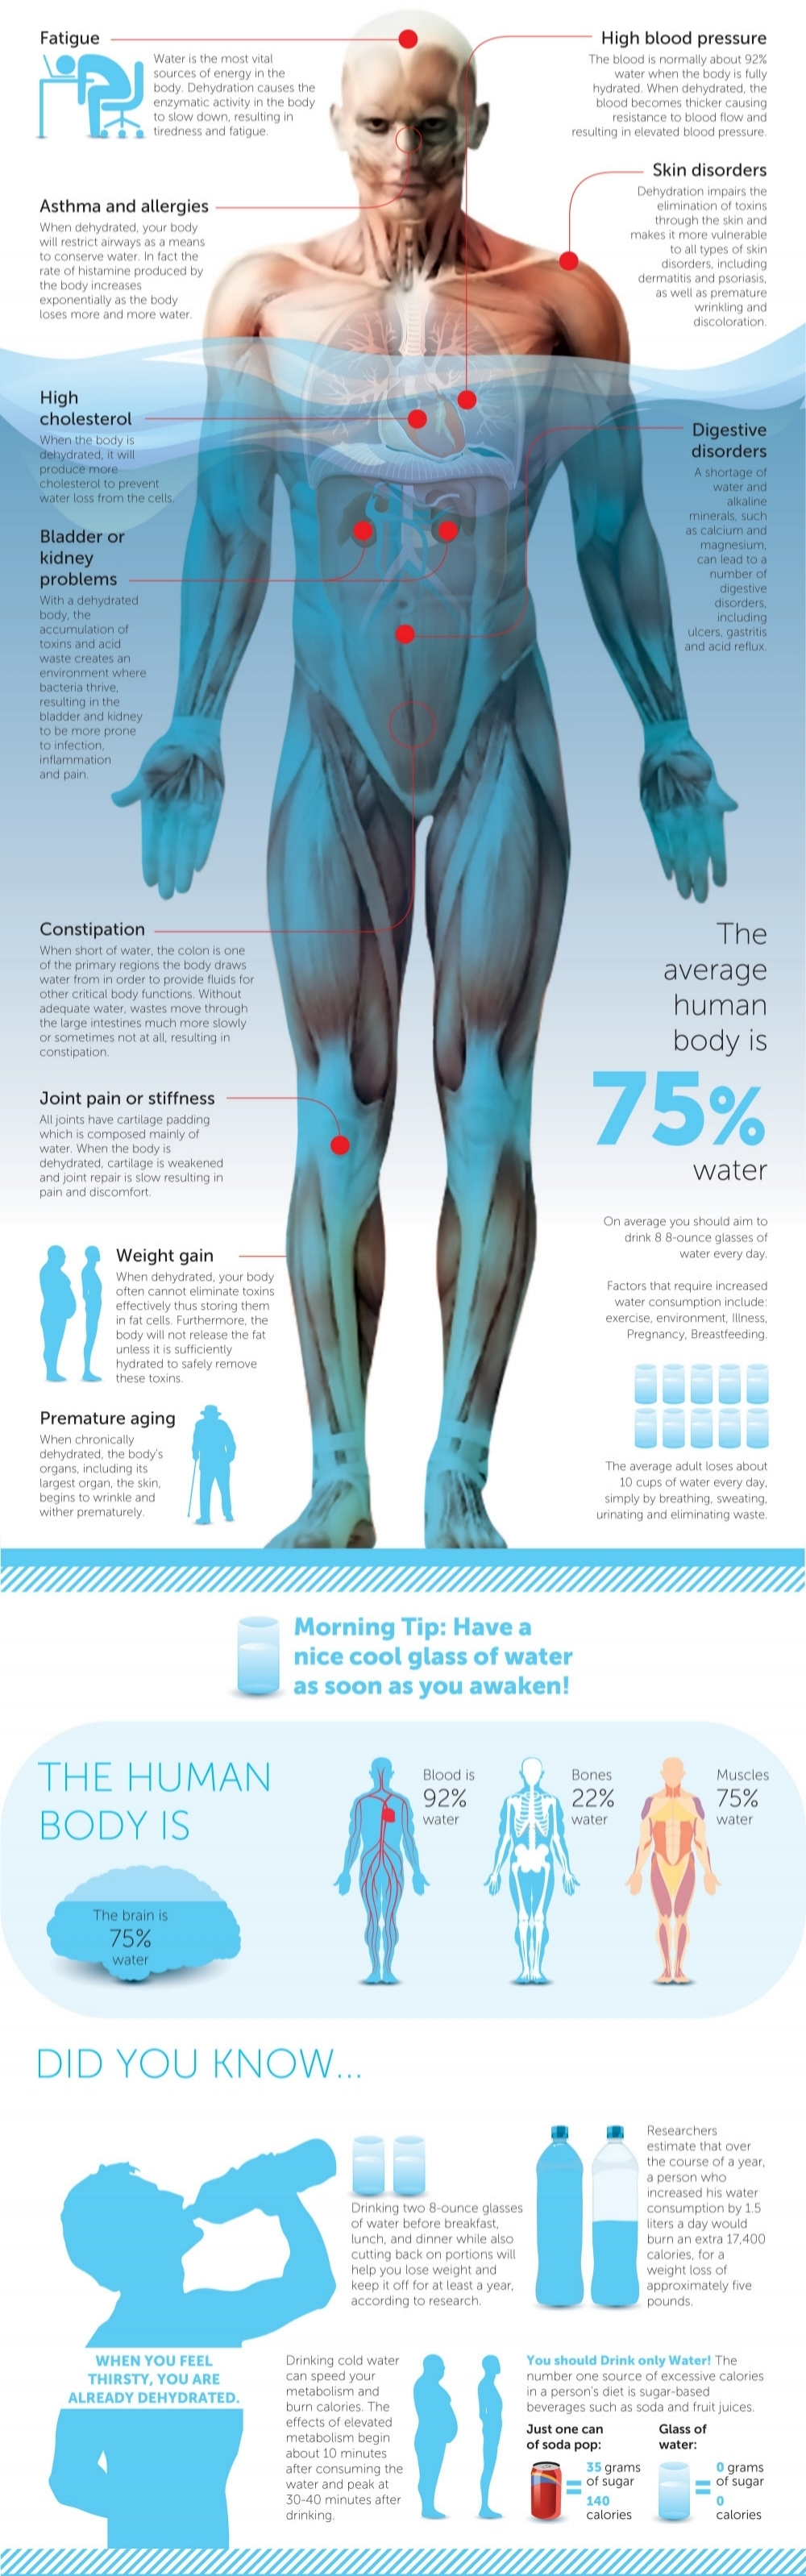 Source: http://www.infographicspedia.com/importance-of-water-that-benefits-our-body/